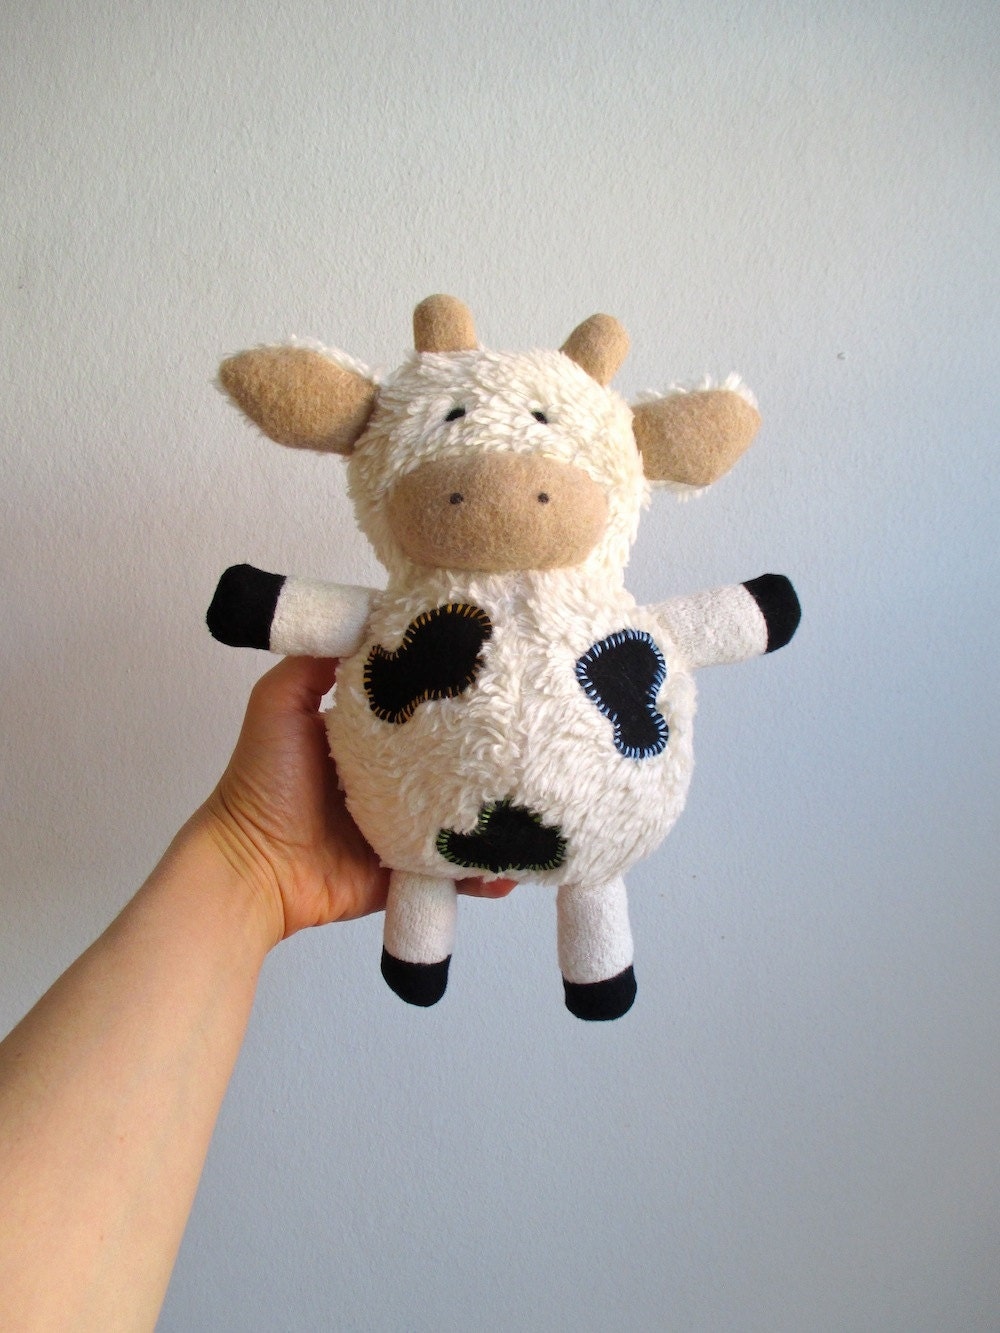 Small Toy Cows : Organic cow toy plush stuffed animal cuddly soft